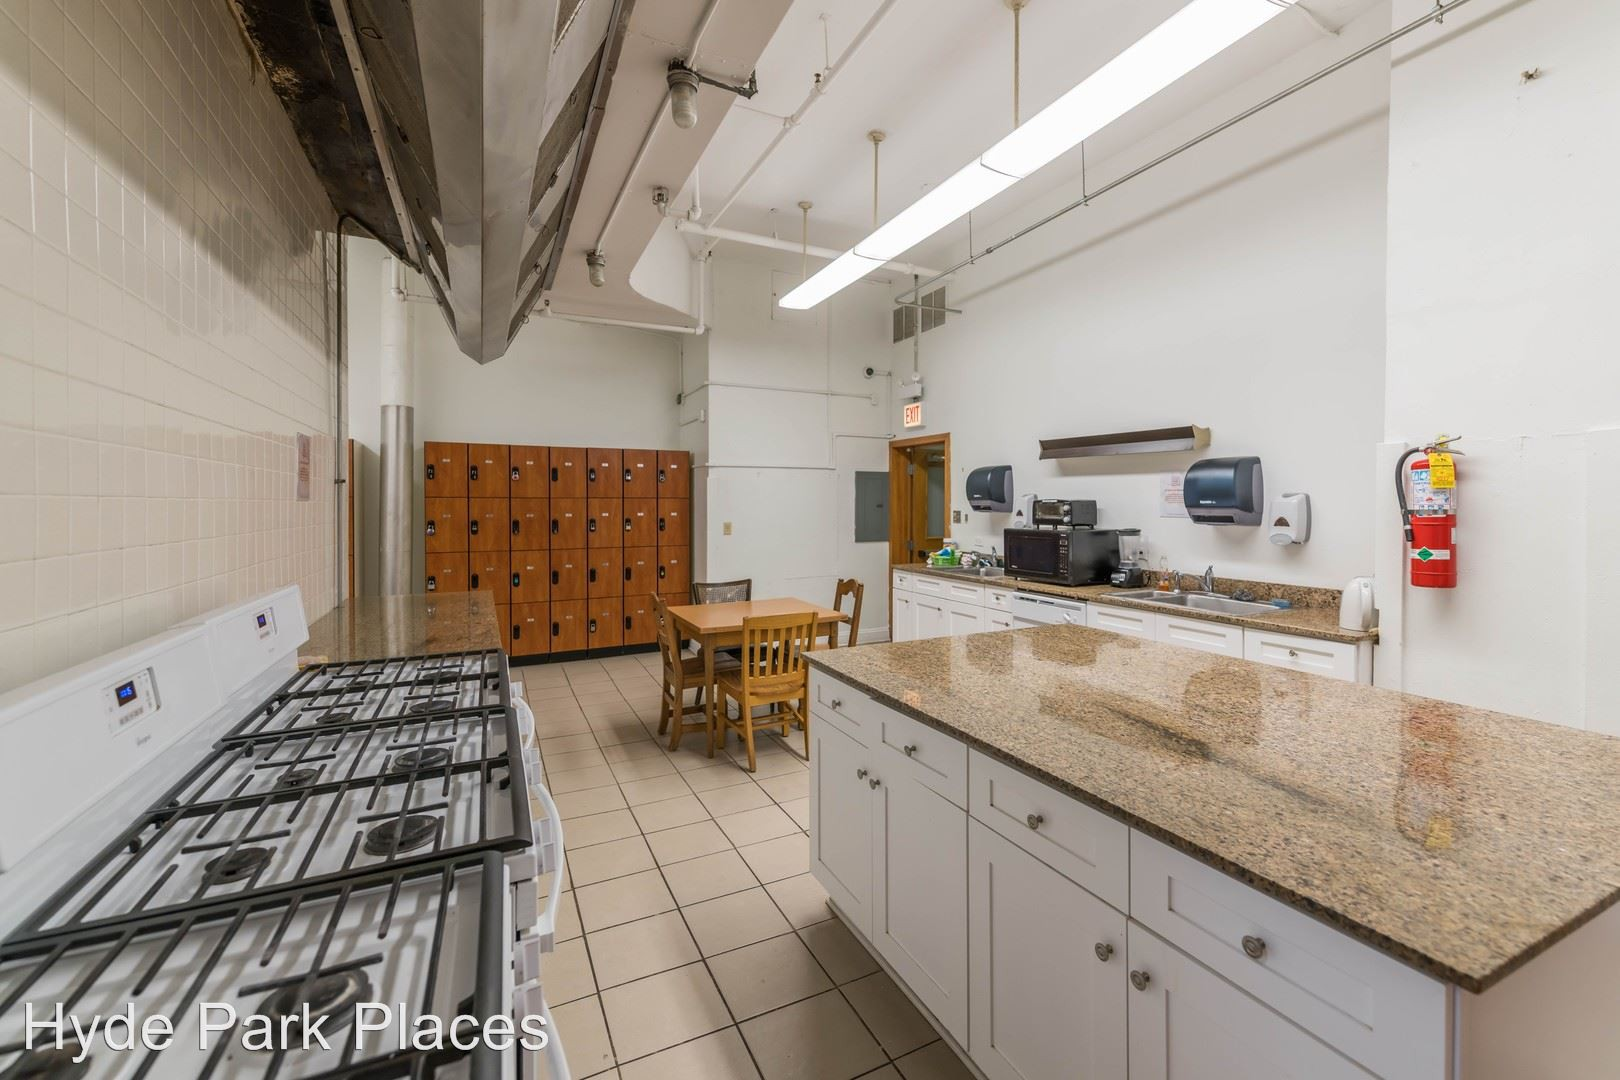 5540 S. Hyde Park Blvd for rent